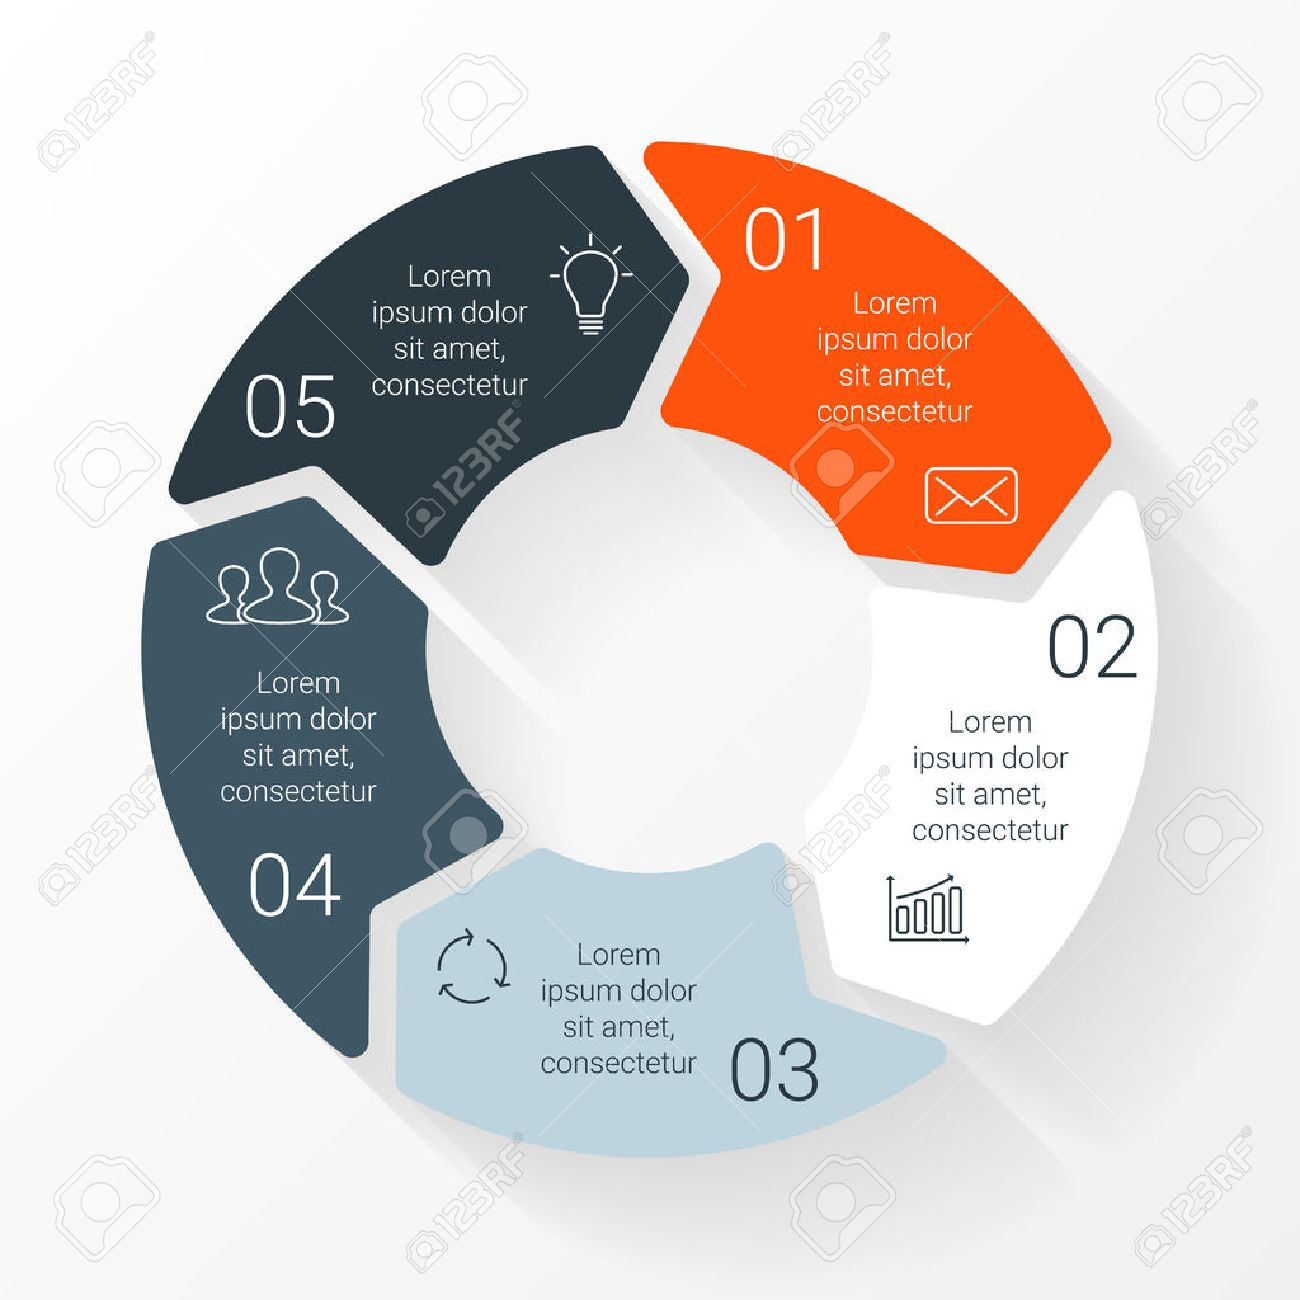 Process cycling arrow by arrow royalty free stock images image - Vector Vector Line Circle Arrows Infographic Template For Cycle Diagram Graph Presentation And Round Chart Business Concept With 5 Options Parts